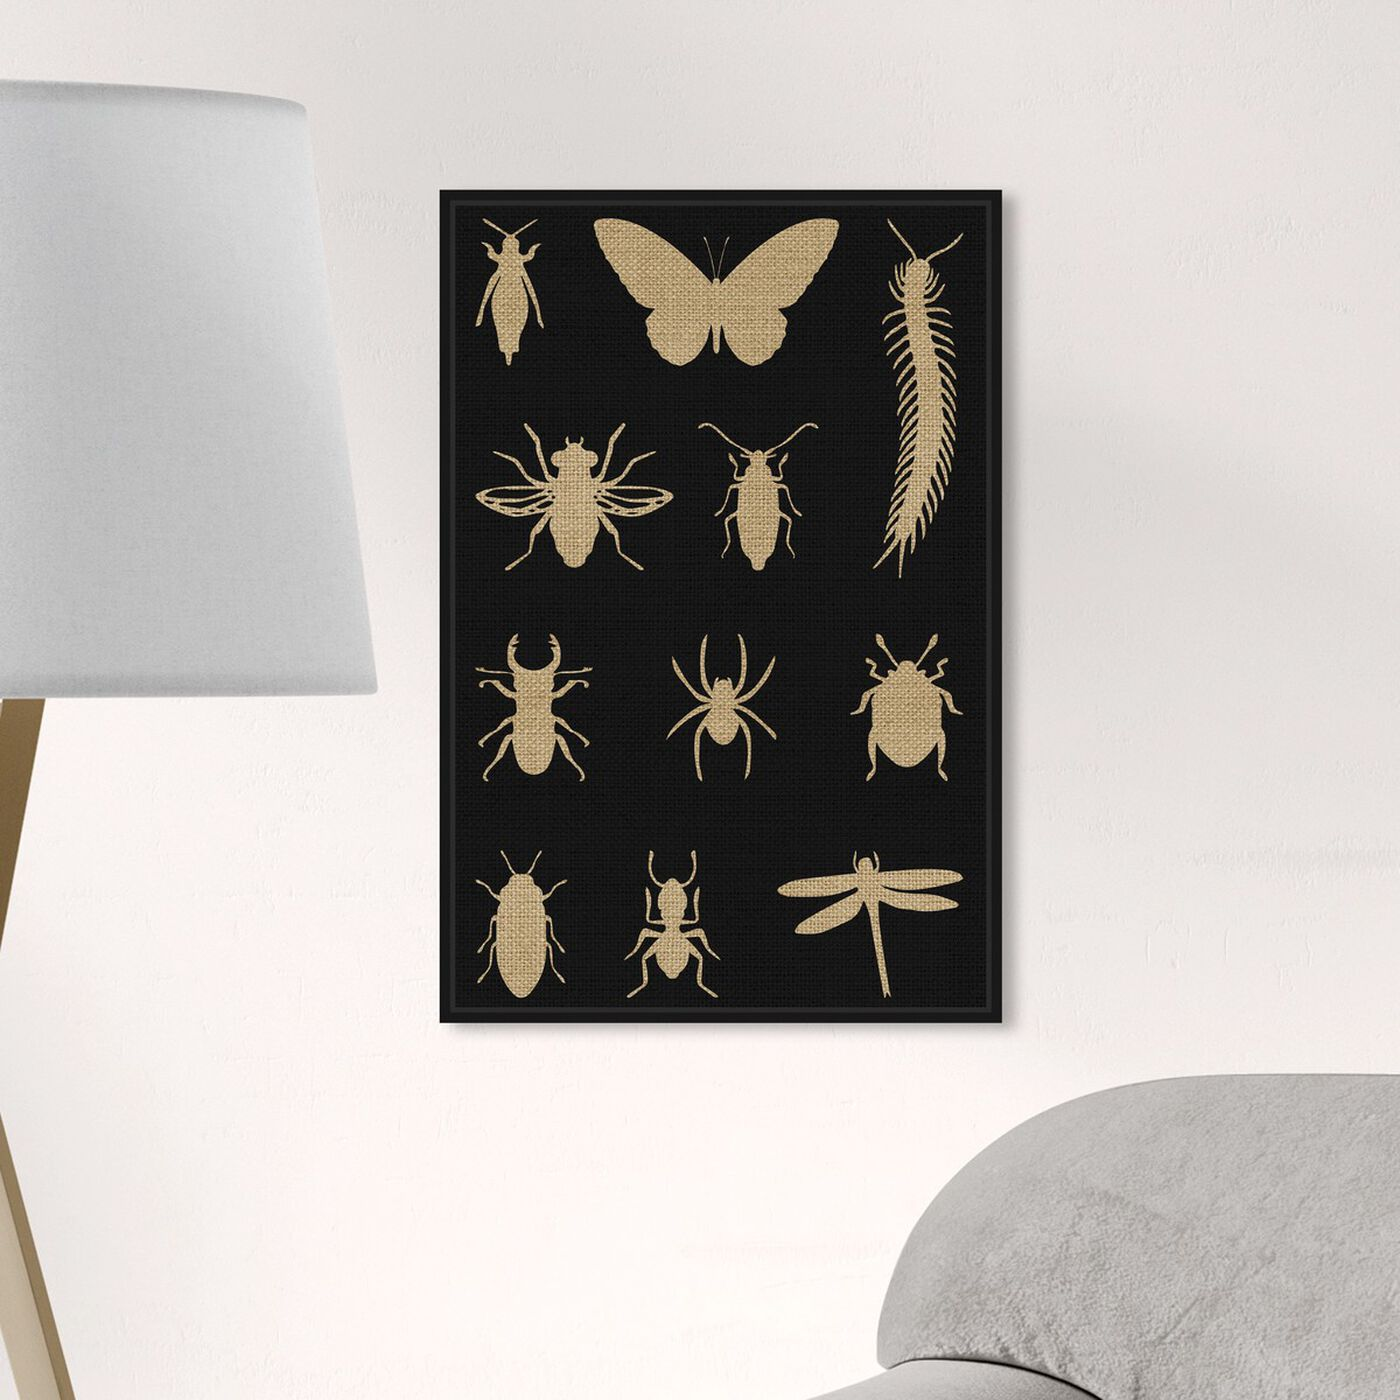 Hanging view of Black Creepy Crawlies featuring animals and insects art.